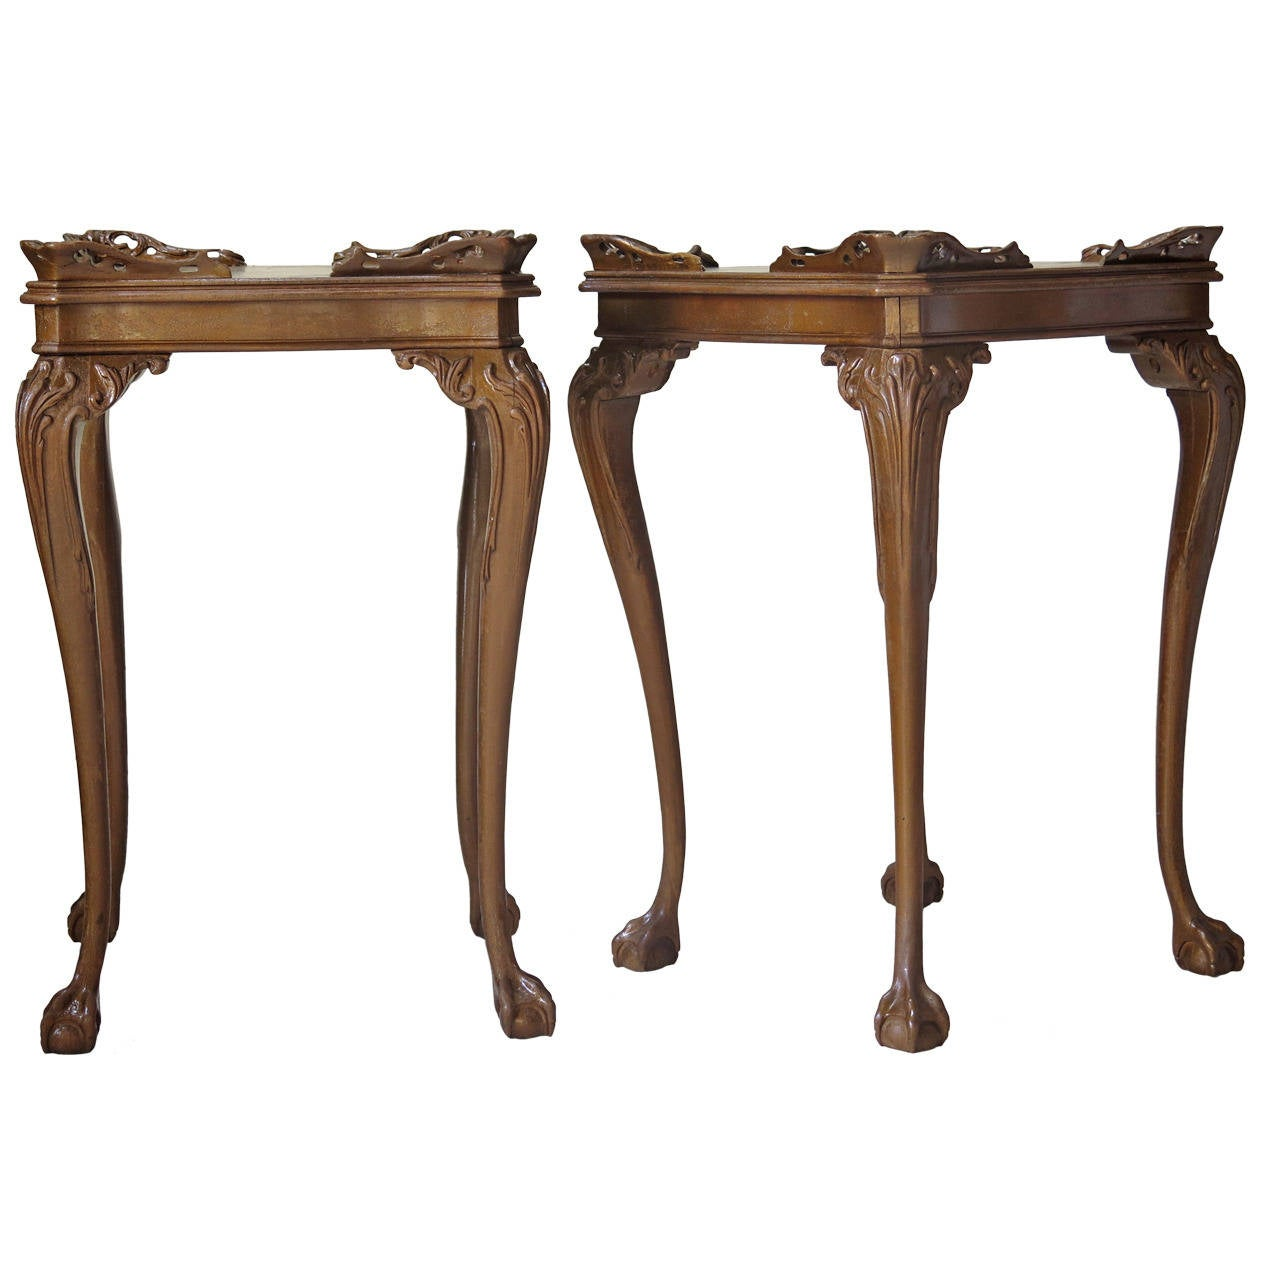 Pair of Ball and Claw Side Tables, France, Late 19th Century